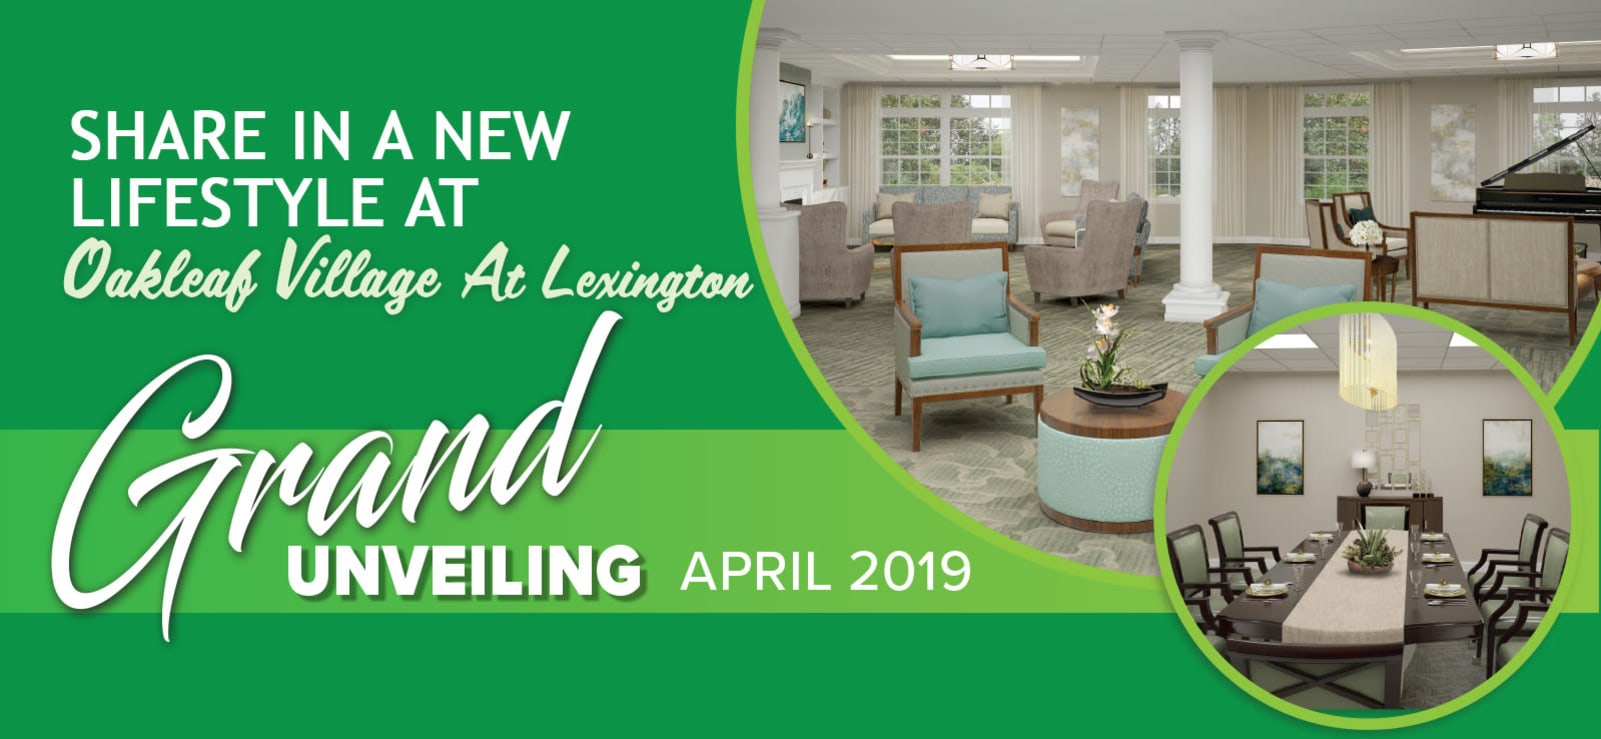 Senior living in Lexington with a wonderful clubhouse and amenities